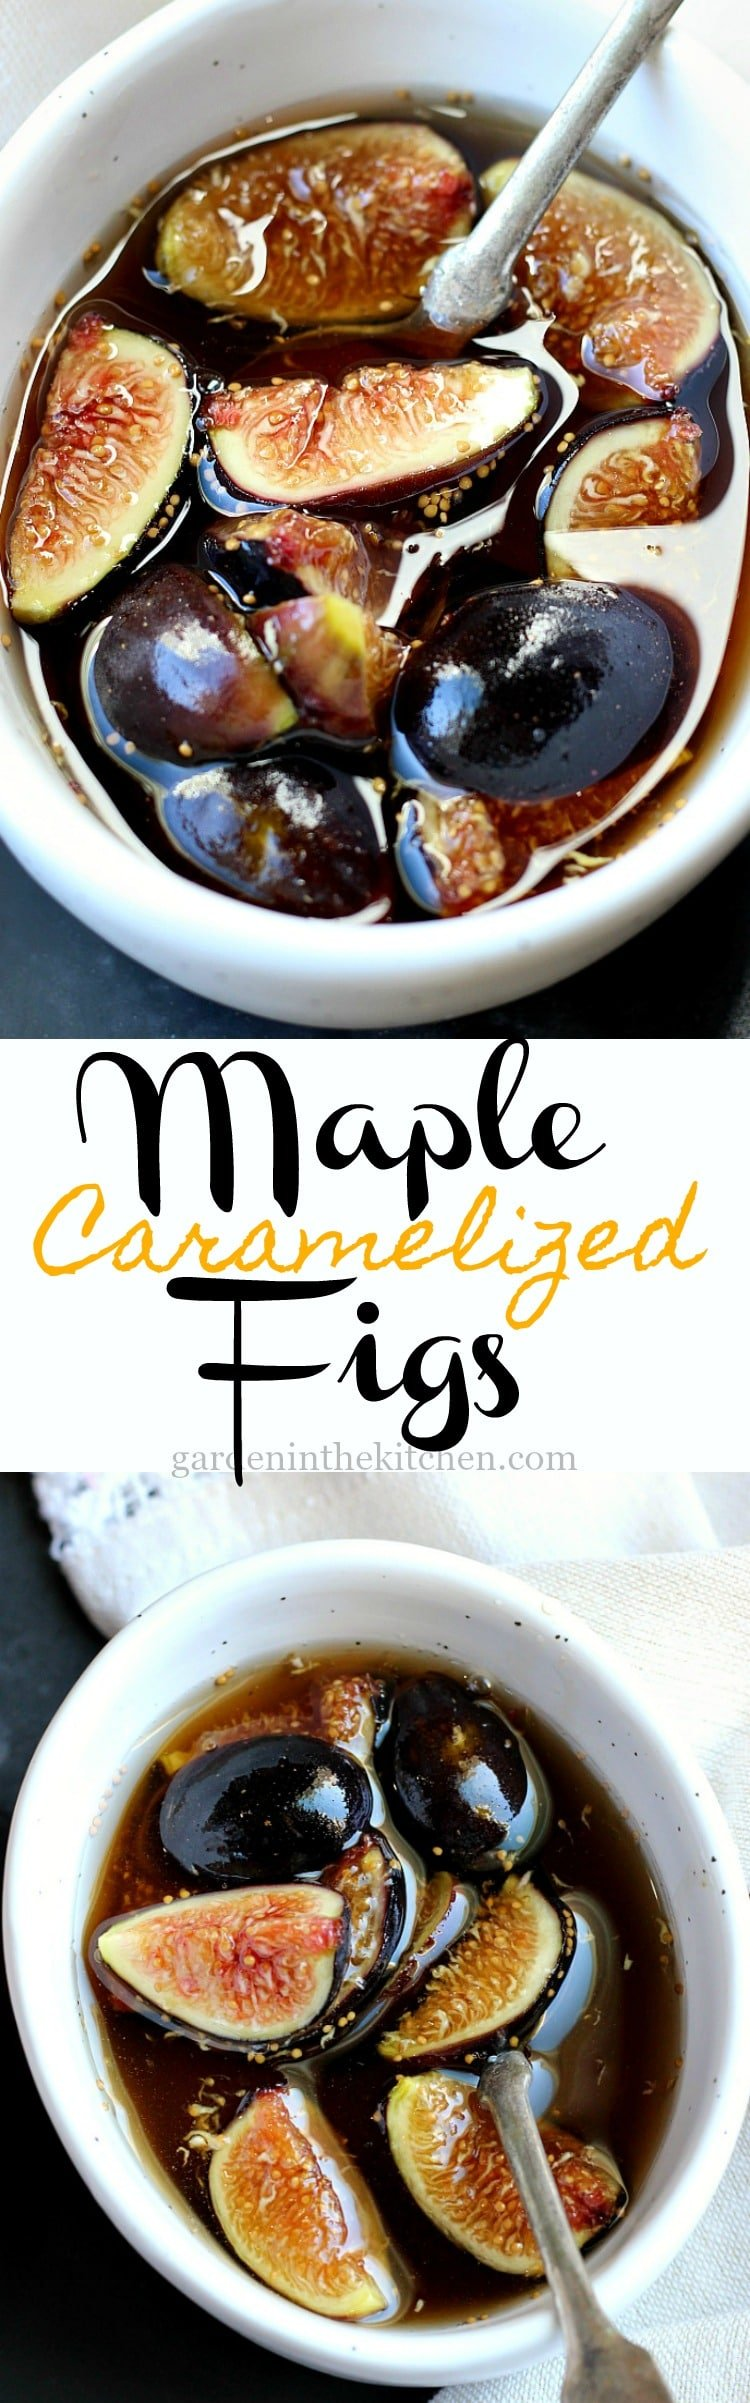 Maple Caramelized Figs | Garden in the Kitchen